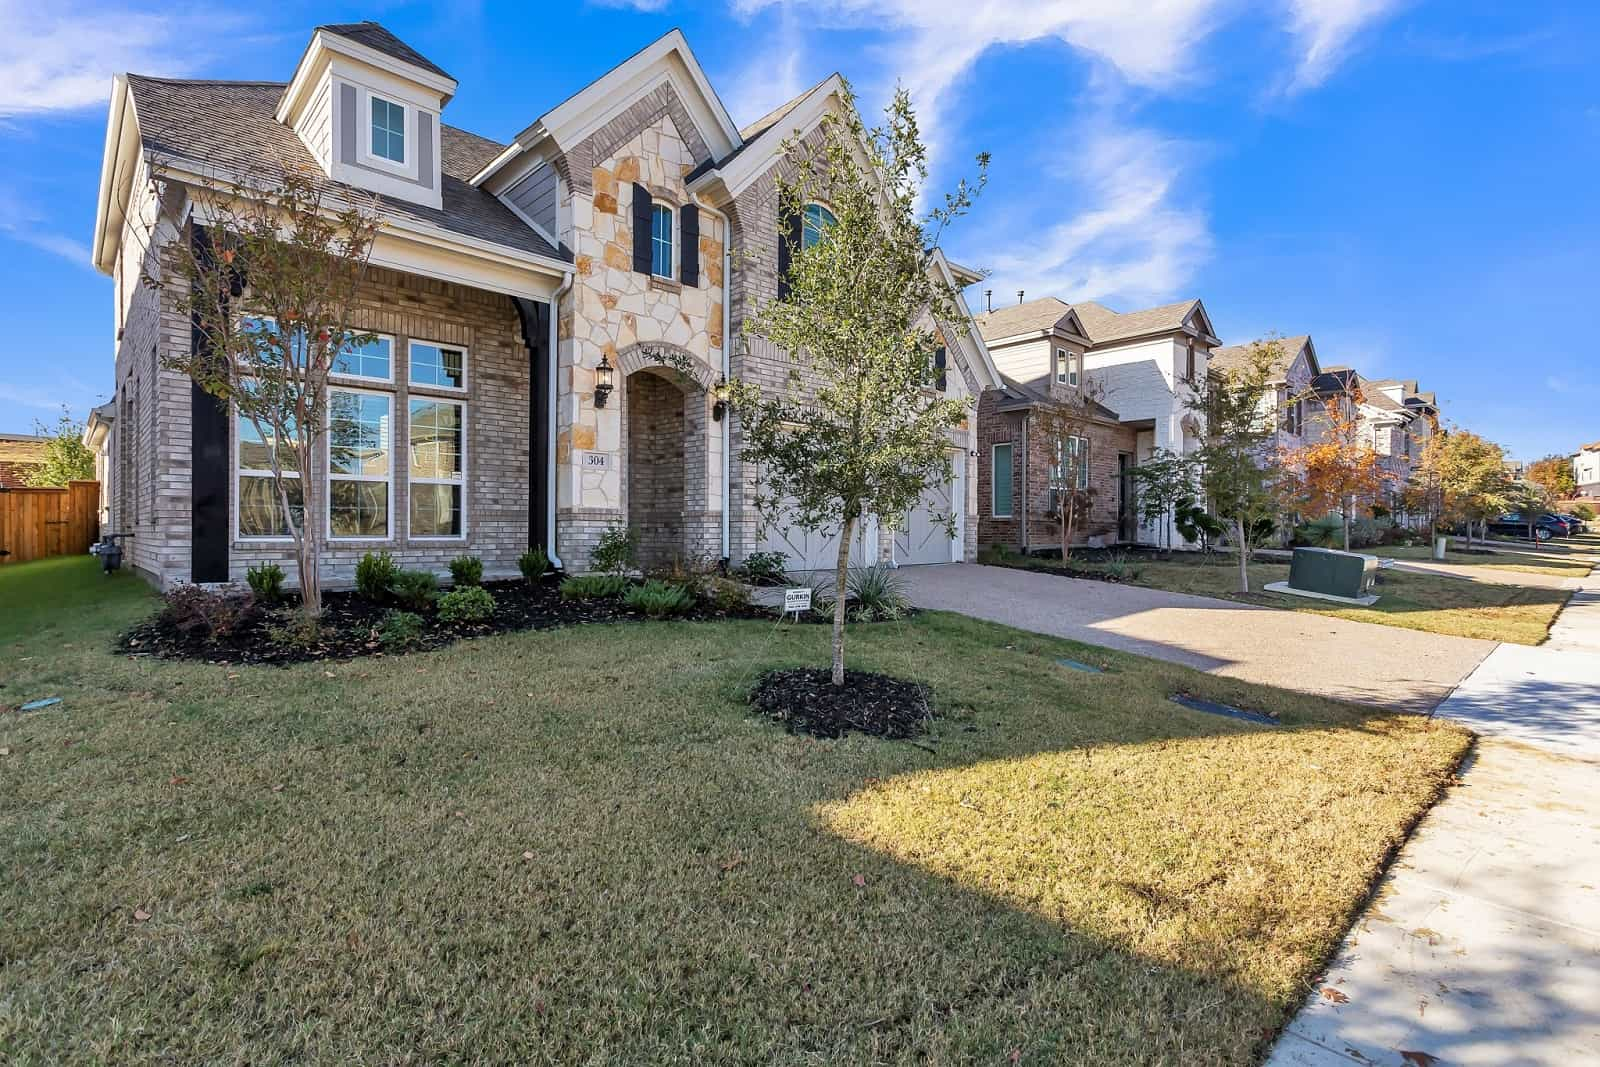 Real Estate Photography in Irving - TX - Front View